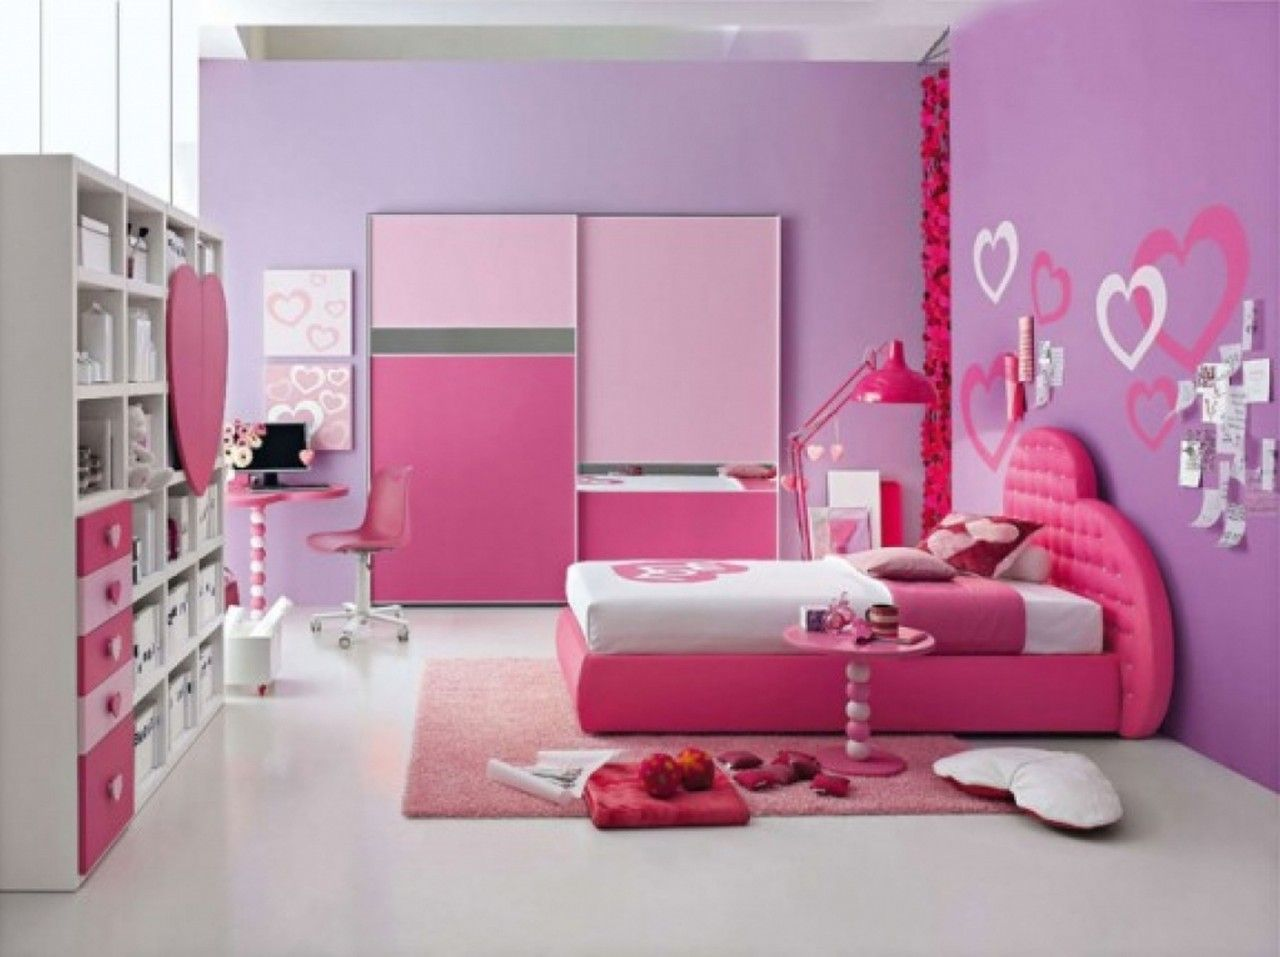 Bedroom ideas for girls purple - Ikea Teenage Girl Bedroom Ideas Cute Bedroom Ideas For Teenage Girls With Purple Wall And